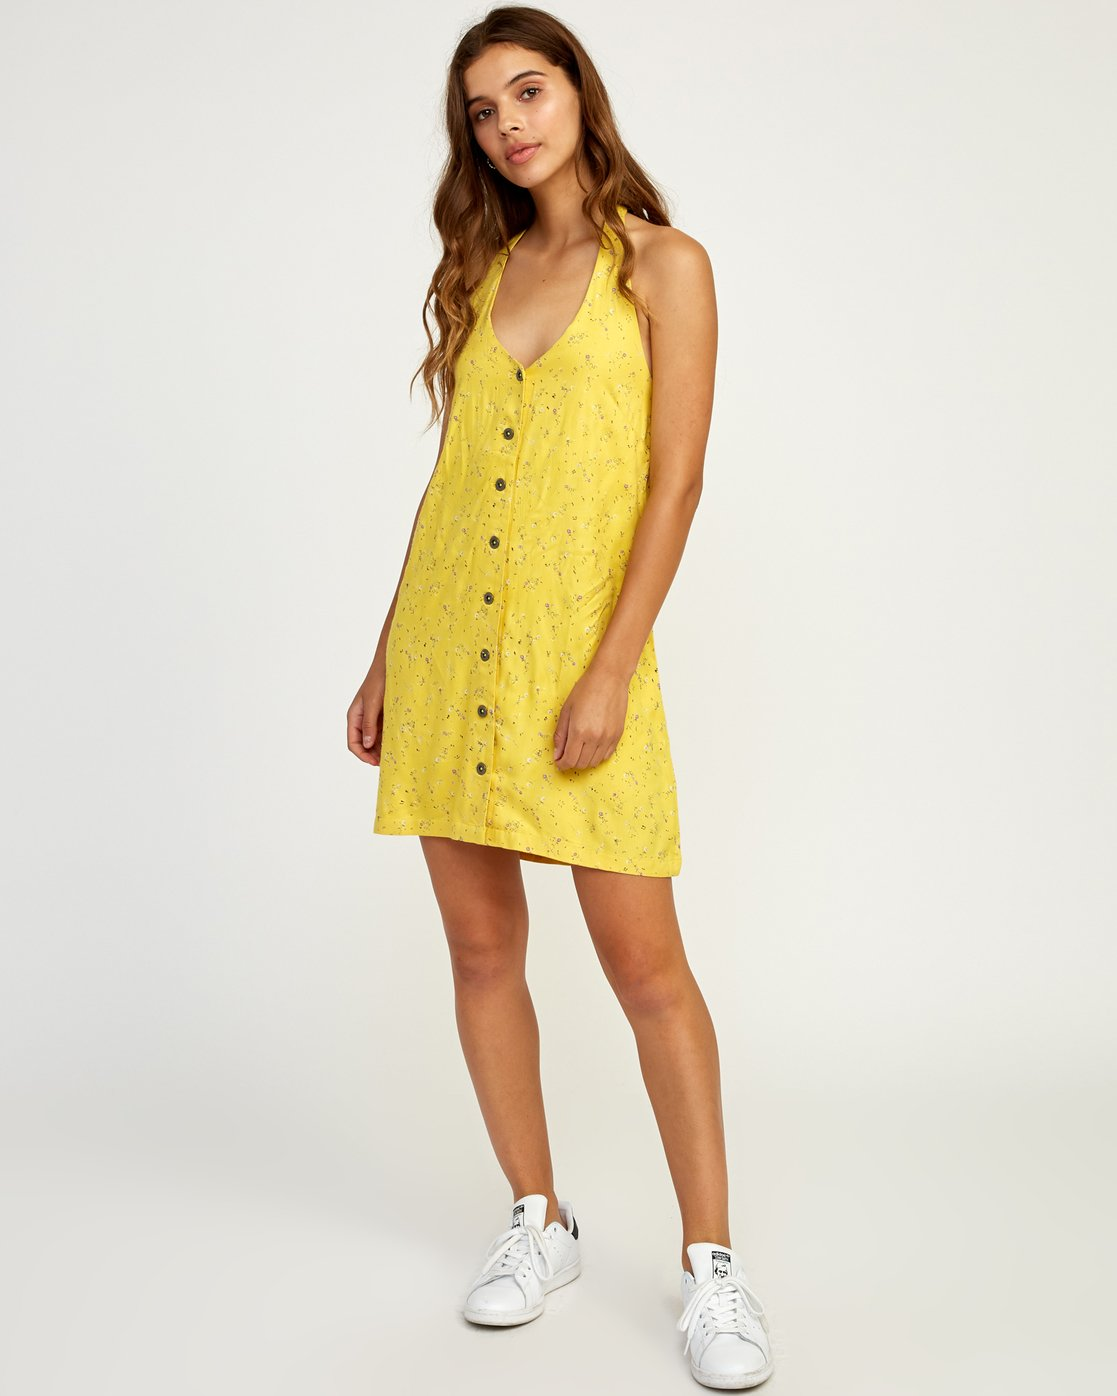 4 90s Baby Halter Dress Yellow WD13TR90 RVCA